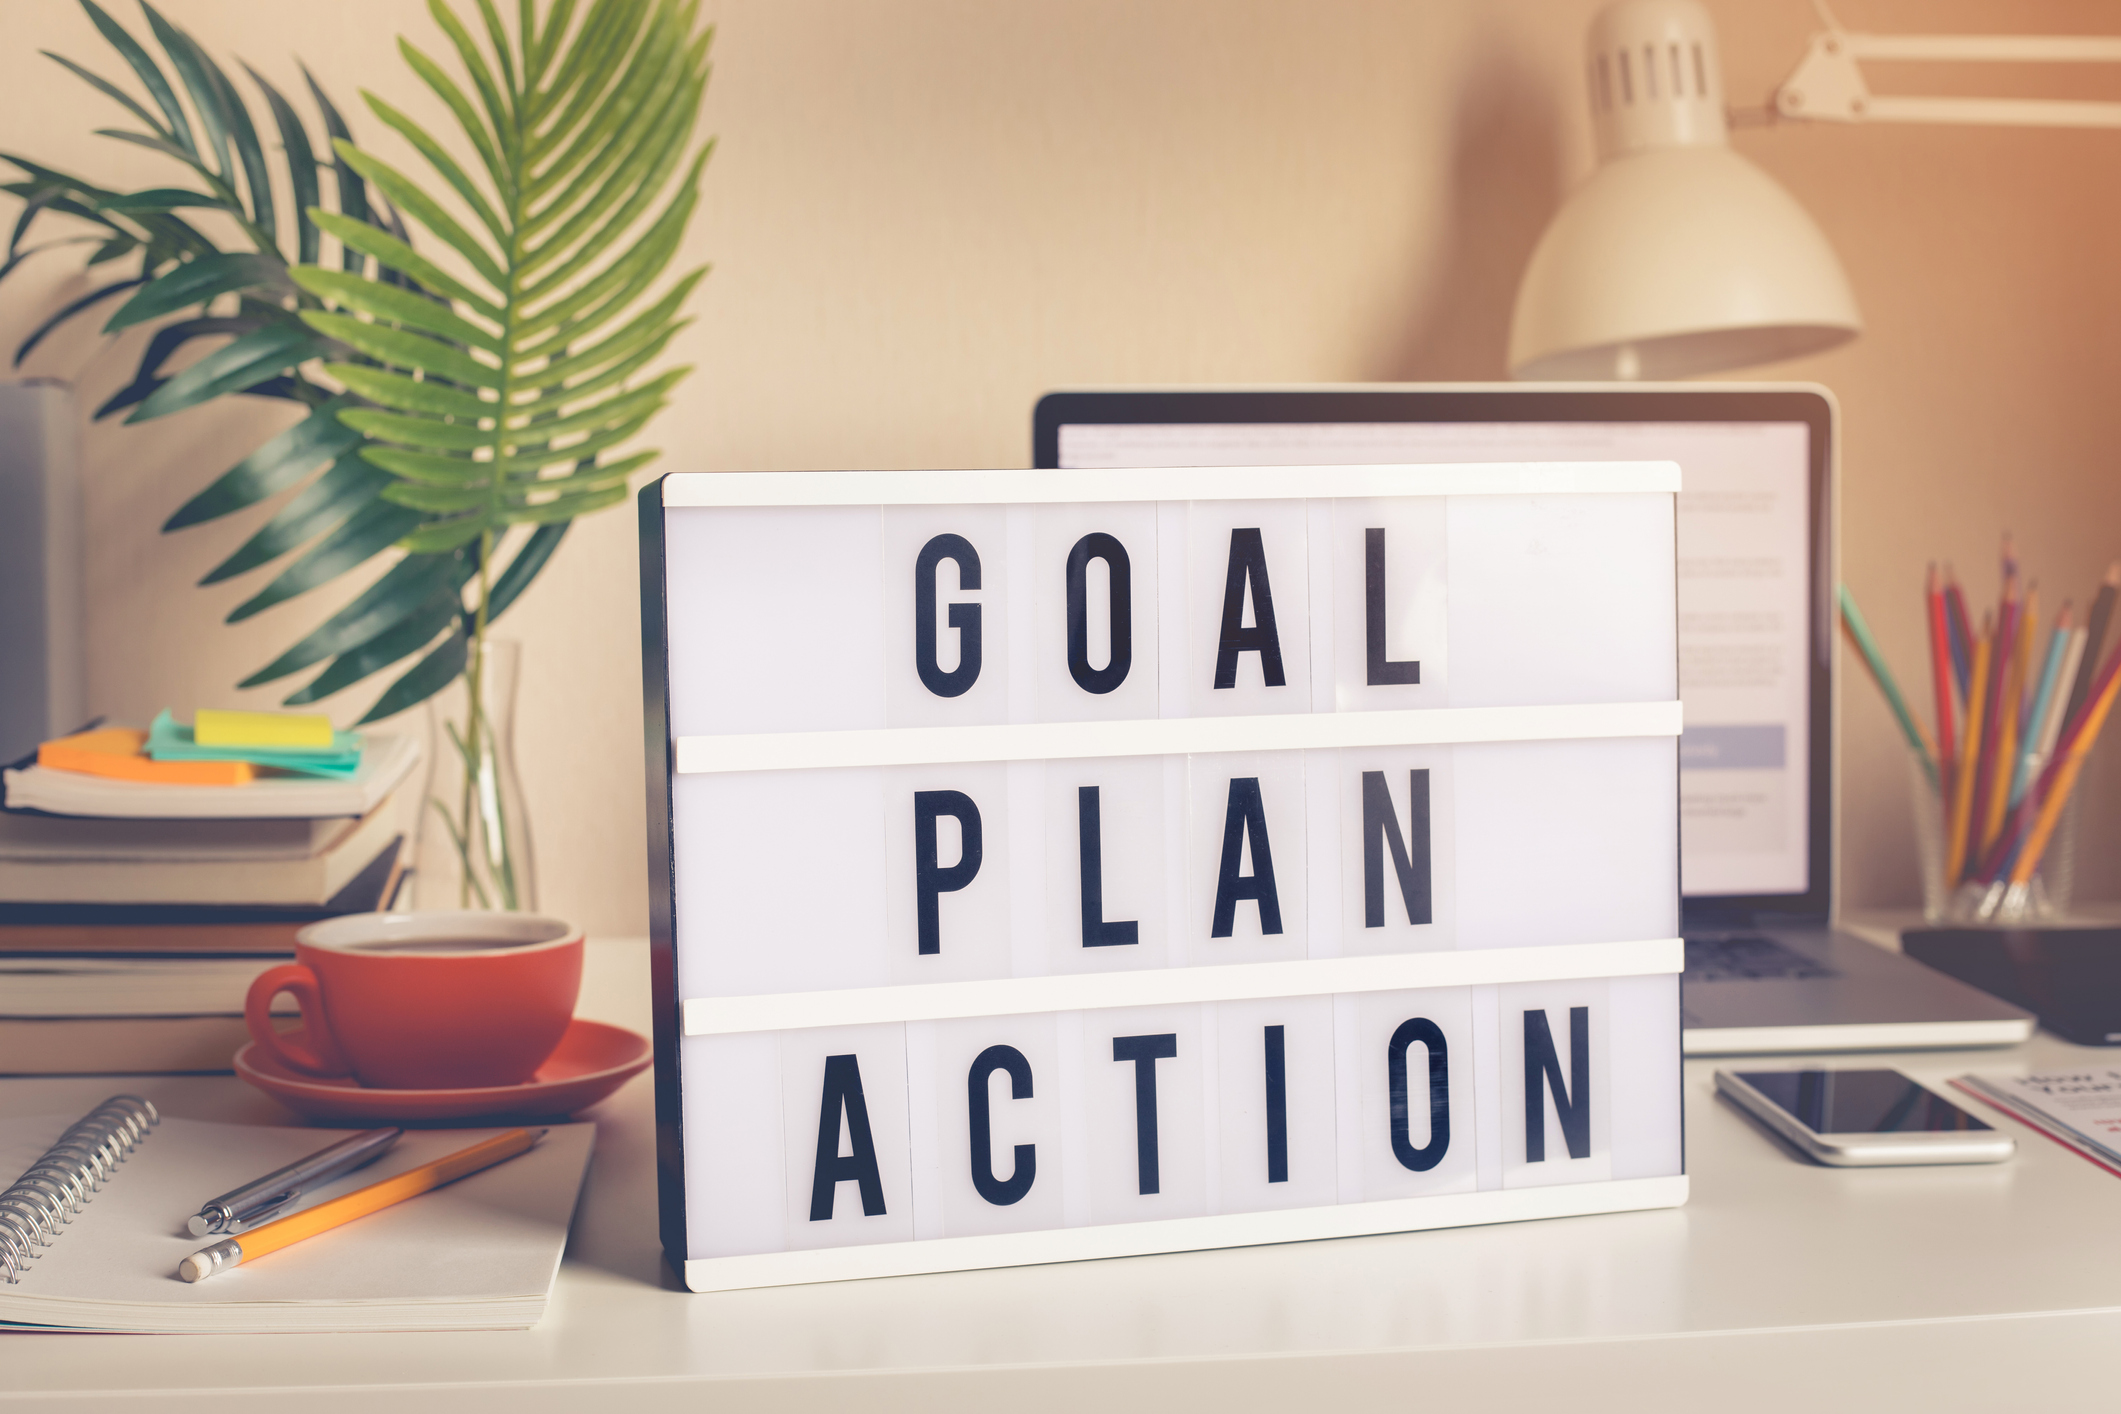 Goal,plan,action text on light box on desk table in home office.Business motivation or inspiration,performance of human concepts ideas